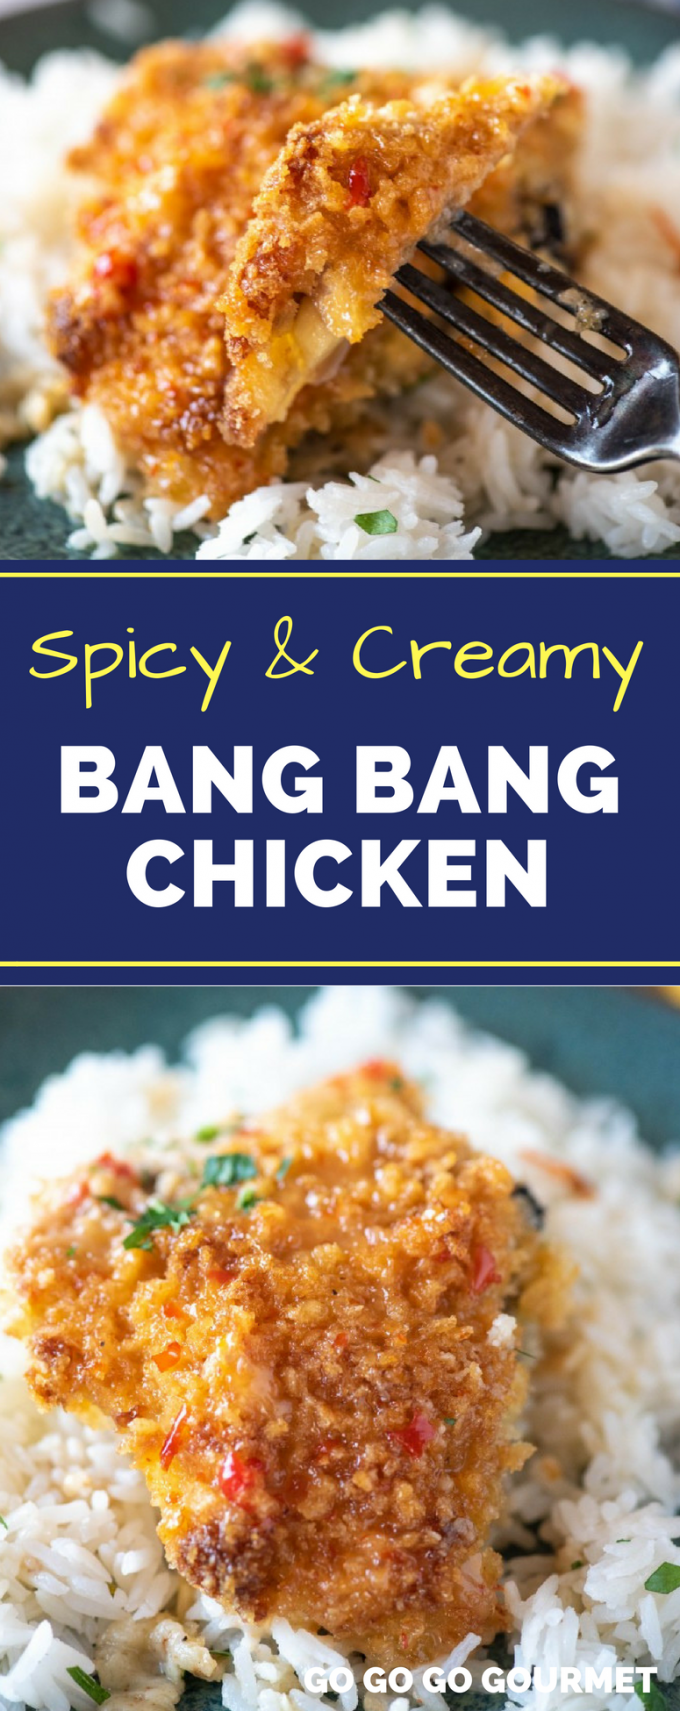 Are you obsessed with the Bang Bang Shrimp from Bonefish Grill? This easy Bang Bang Chicken recipe has all the copycat spicy, creamy flavor of their most popular sauce, but with a change in protein! It's great served over rice or even pasta. #easycopycatrecipes #bangbangshrimp #bangbangchicken #gogogogourmet via @gogogogourmet